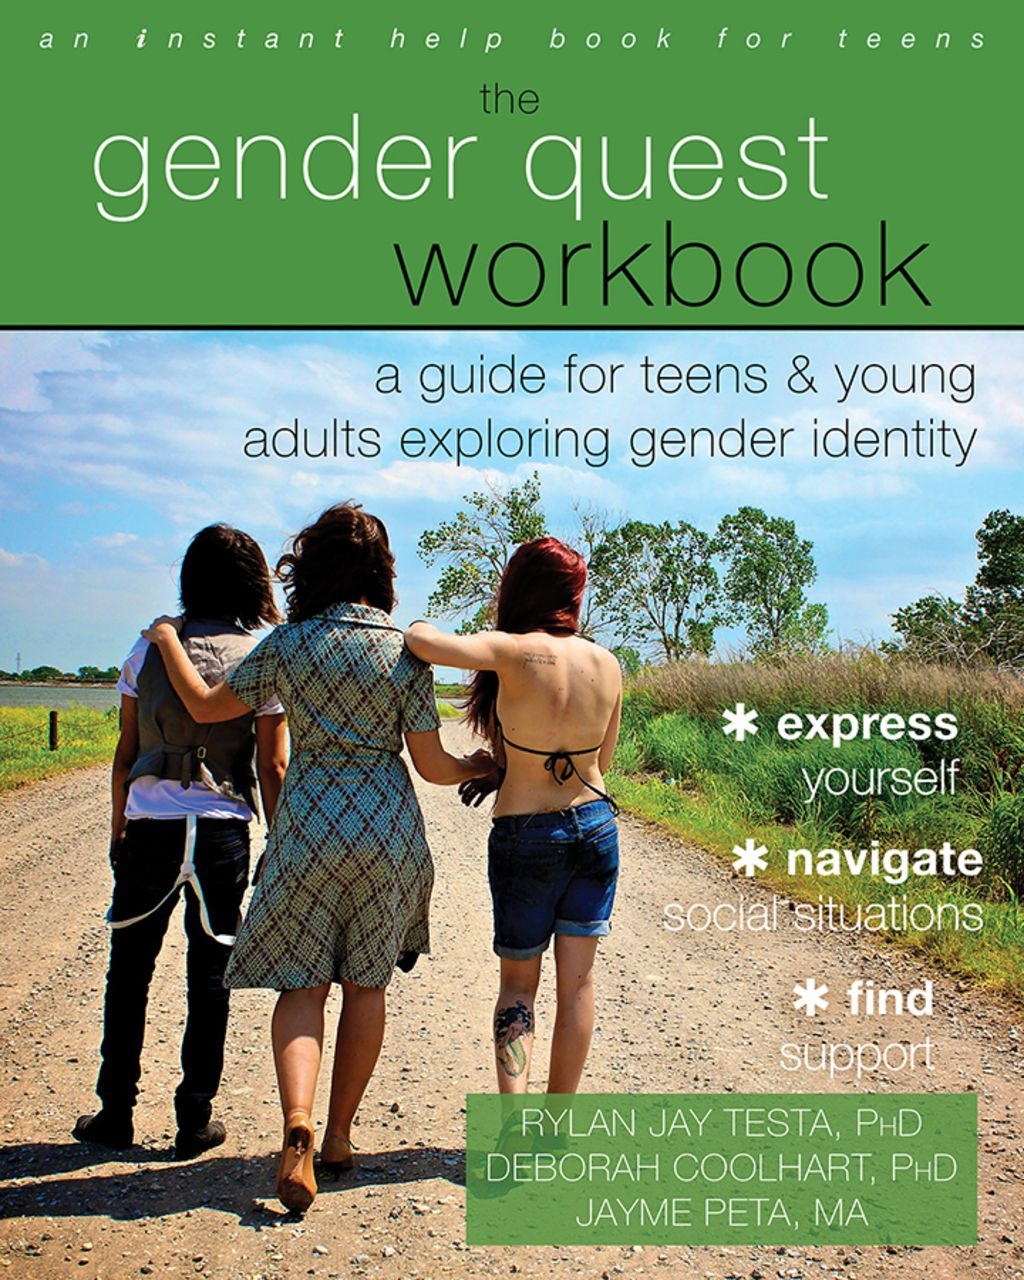 The Gender Quest Workbook Ebook